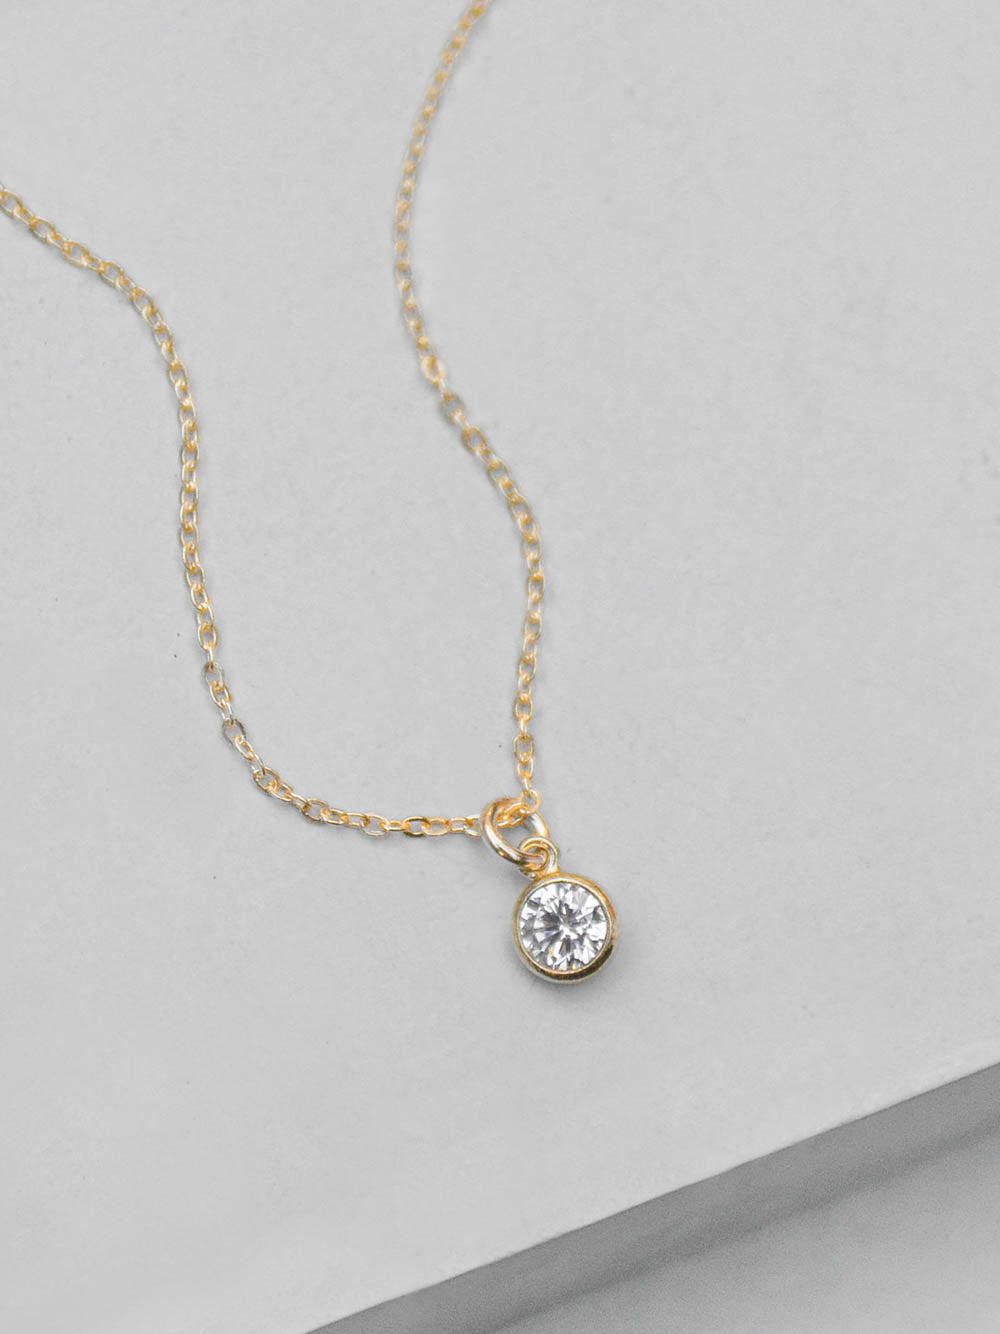 Cubic Zirconia Gold Necklace by The Faint Hearted Jewelry